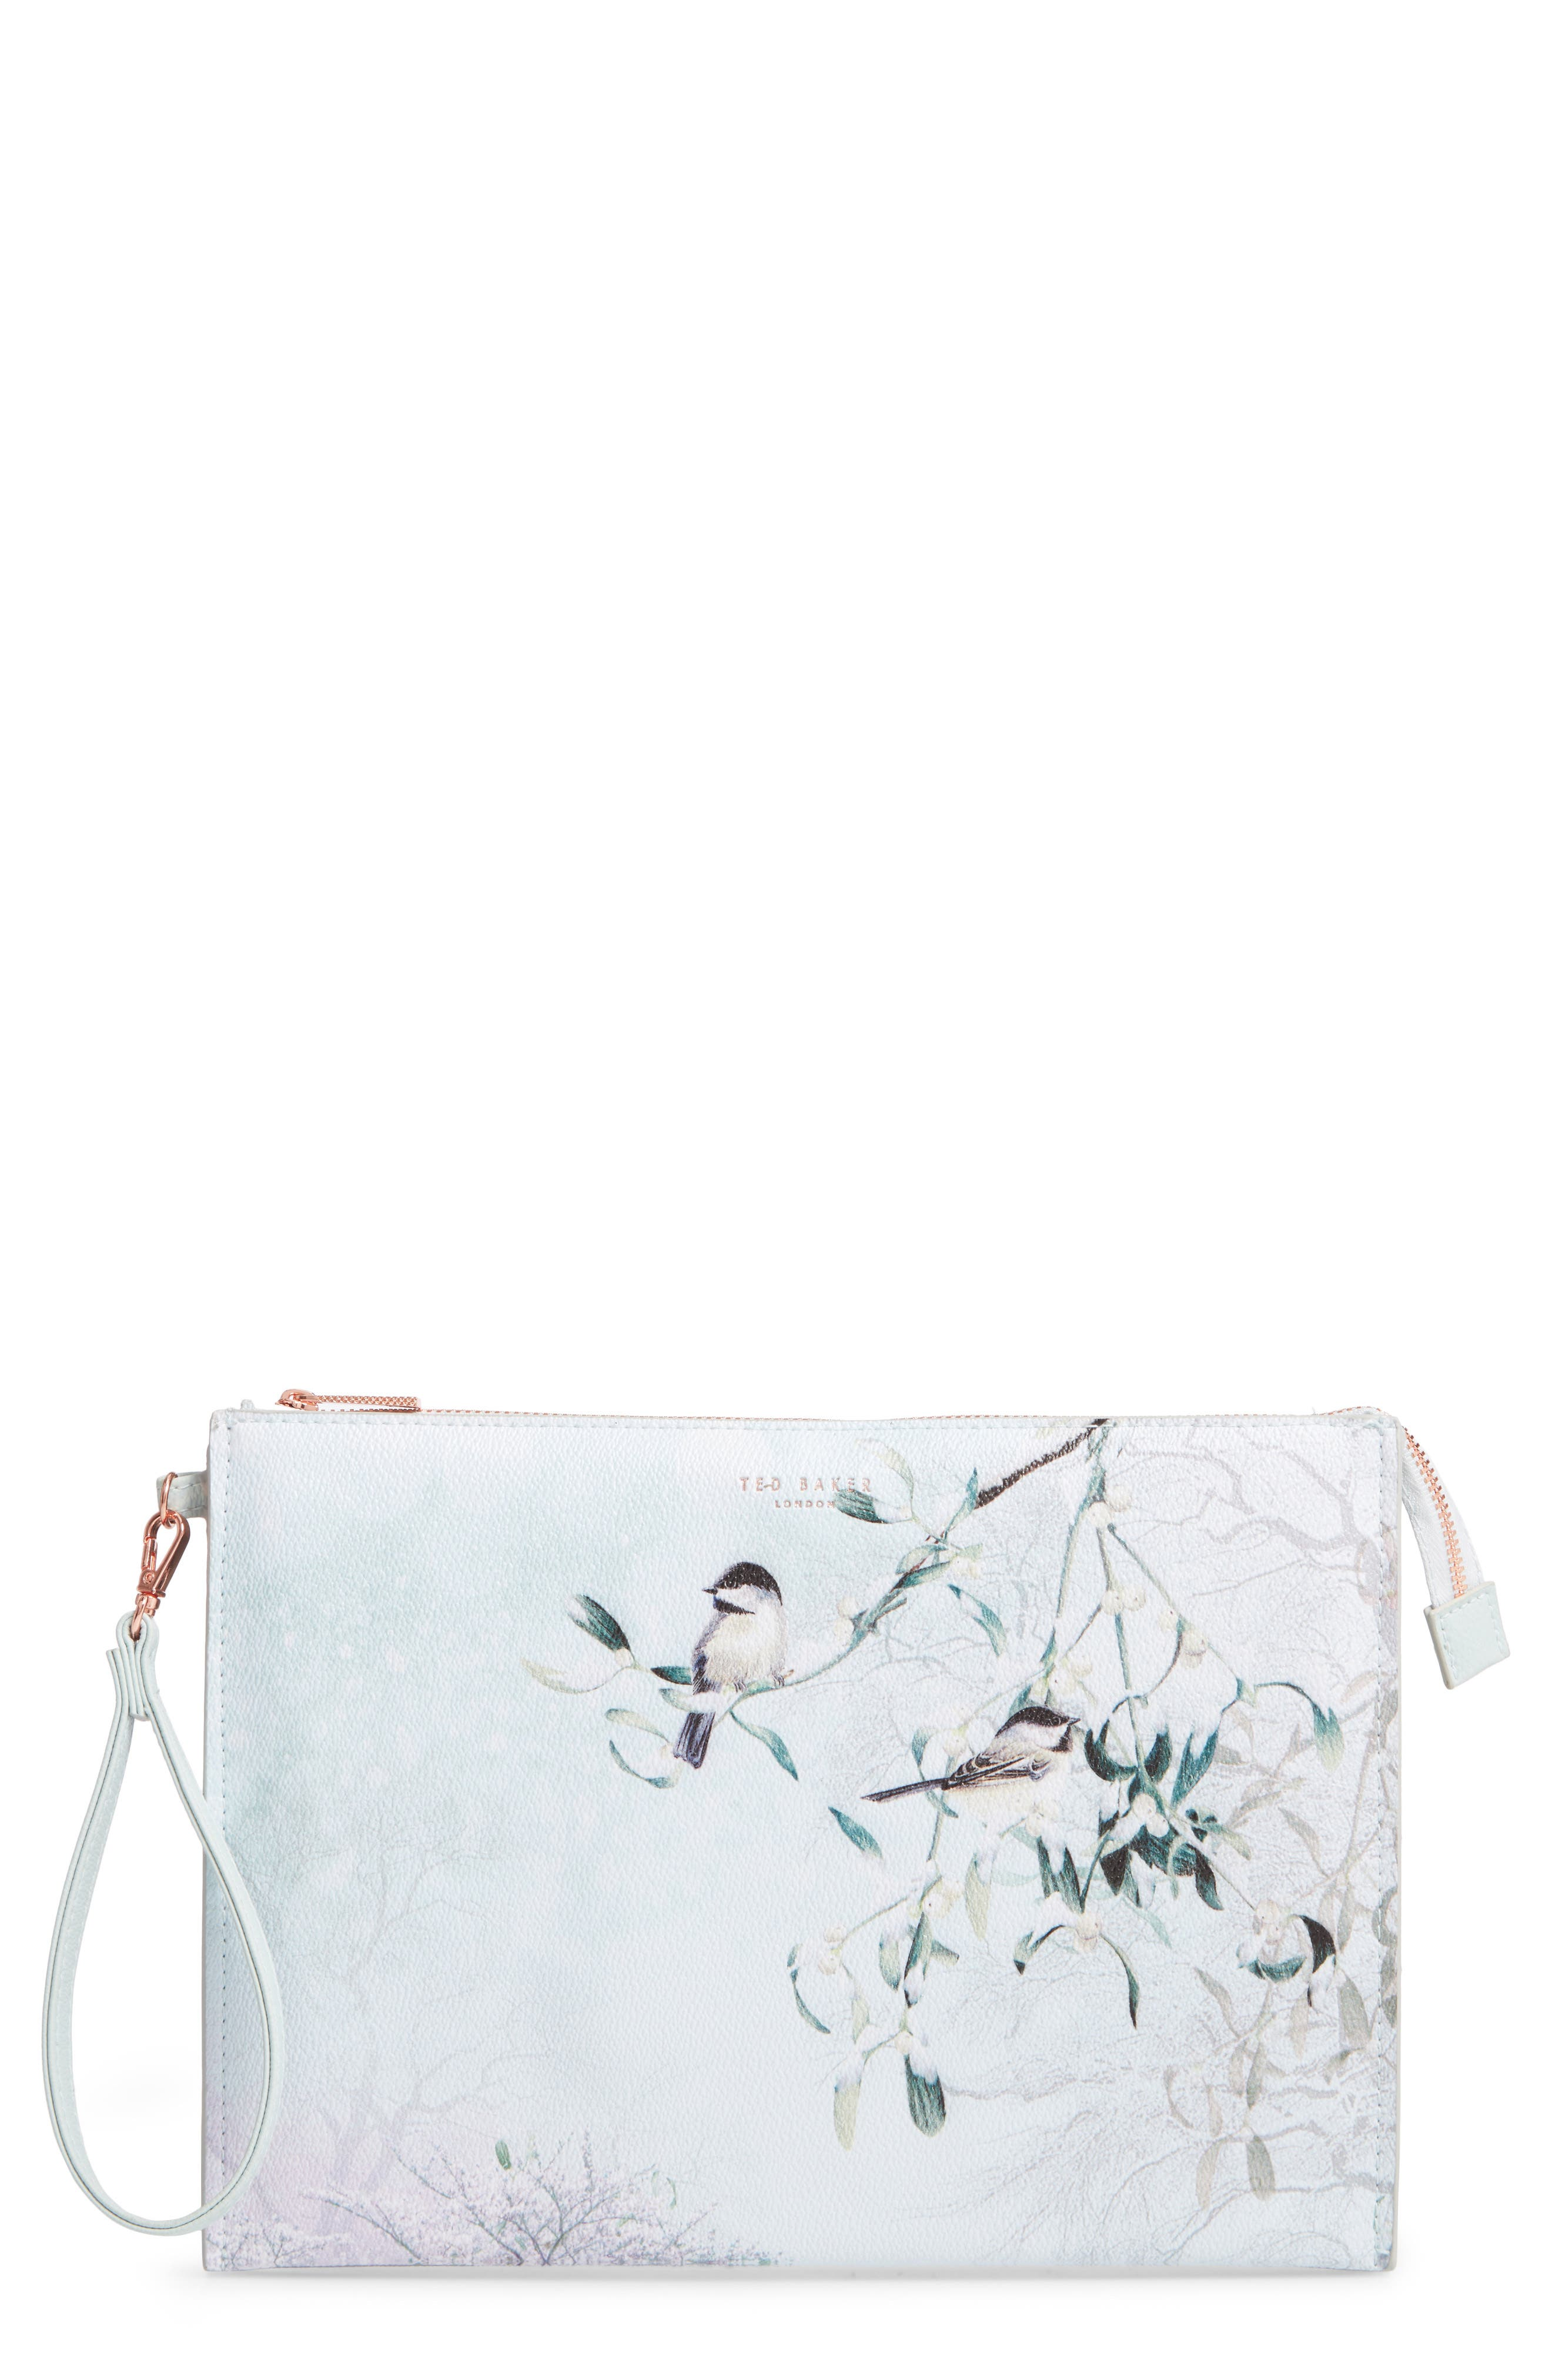 Ted Baker London Karlie Faux Leather Wristlet Pouch - Green